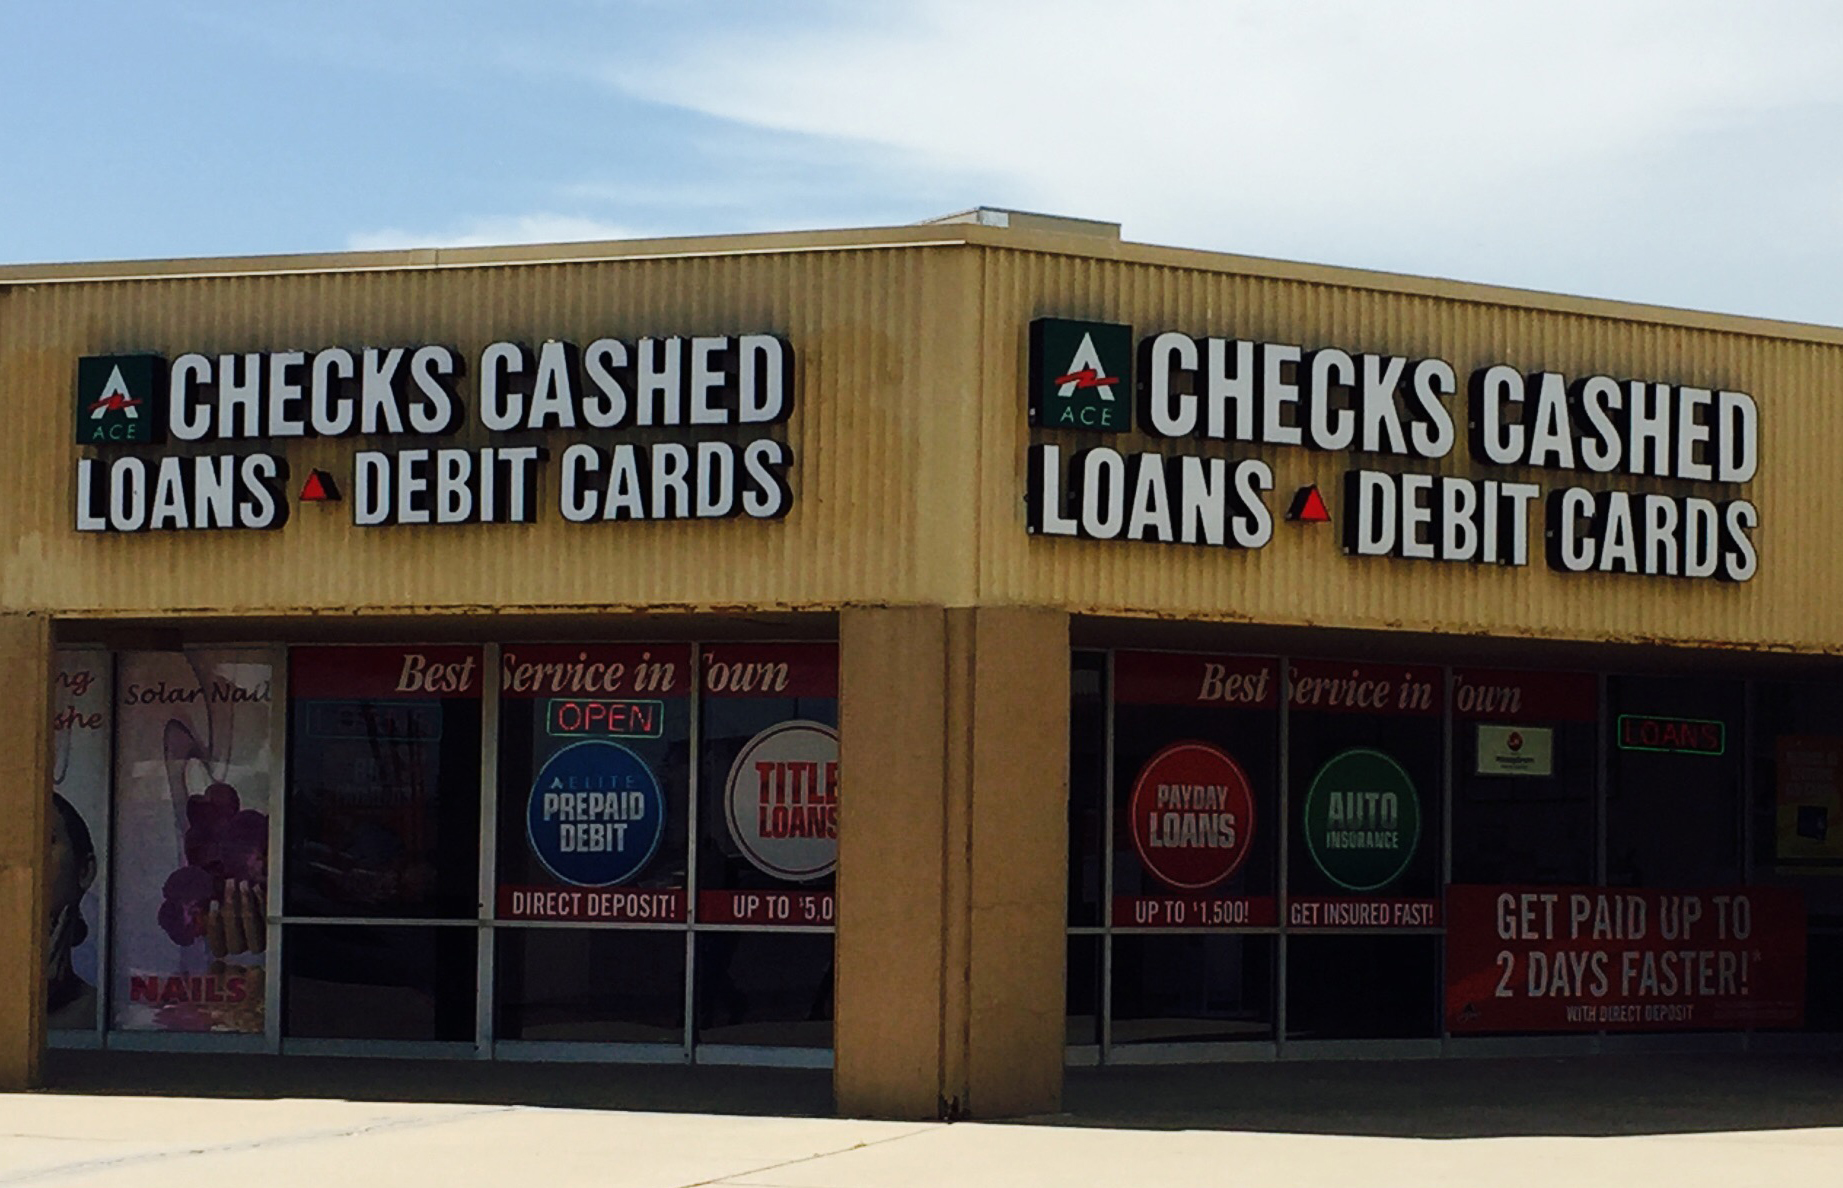 Quick cash and loans photo 2